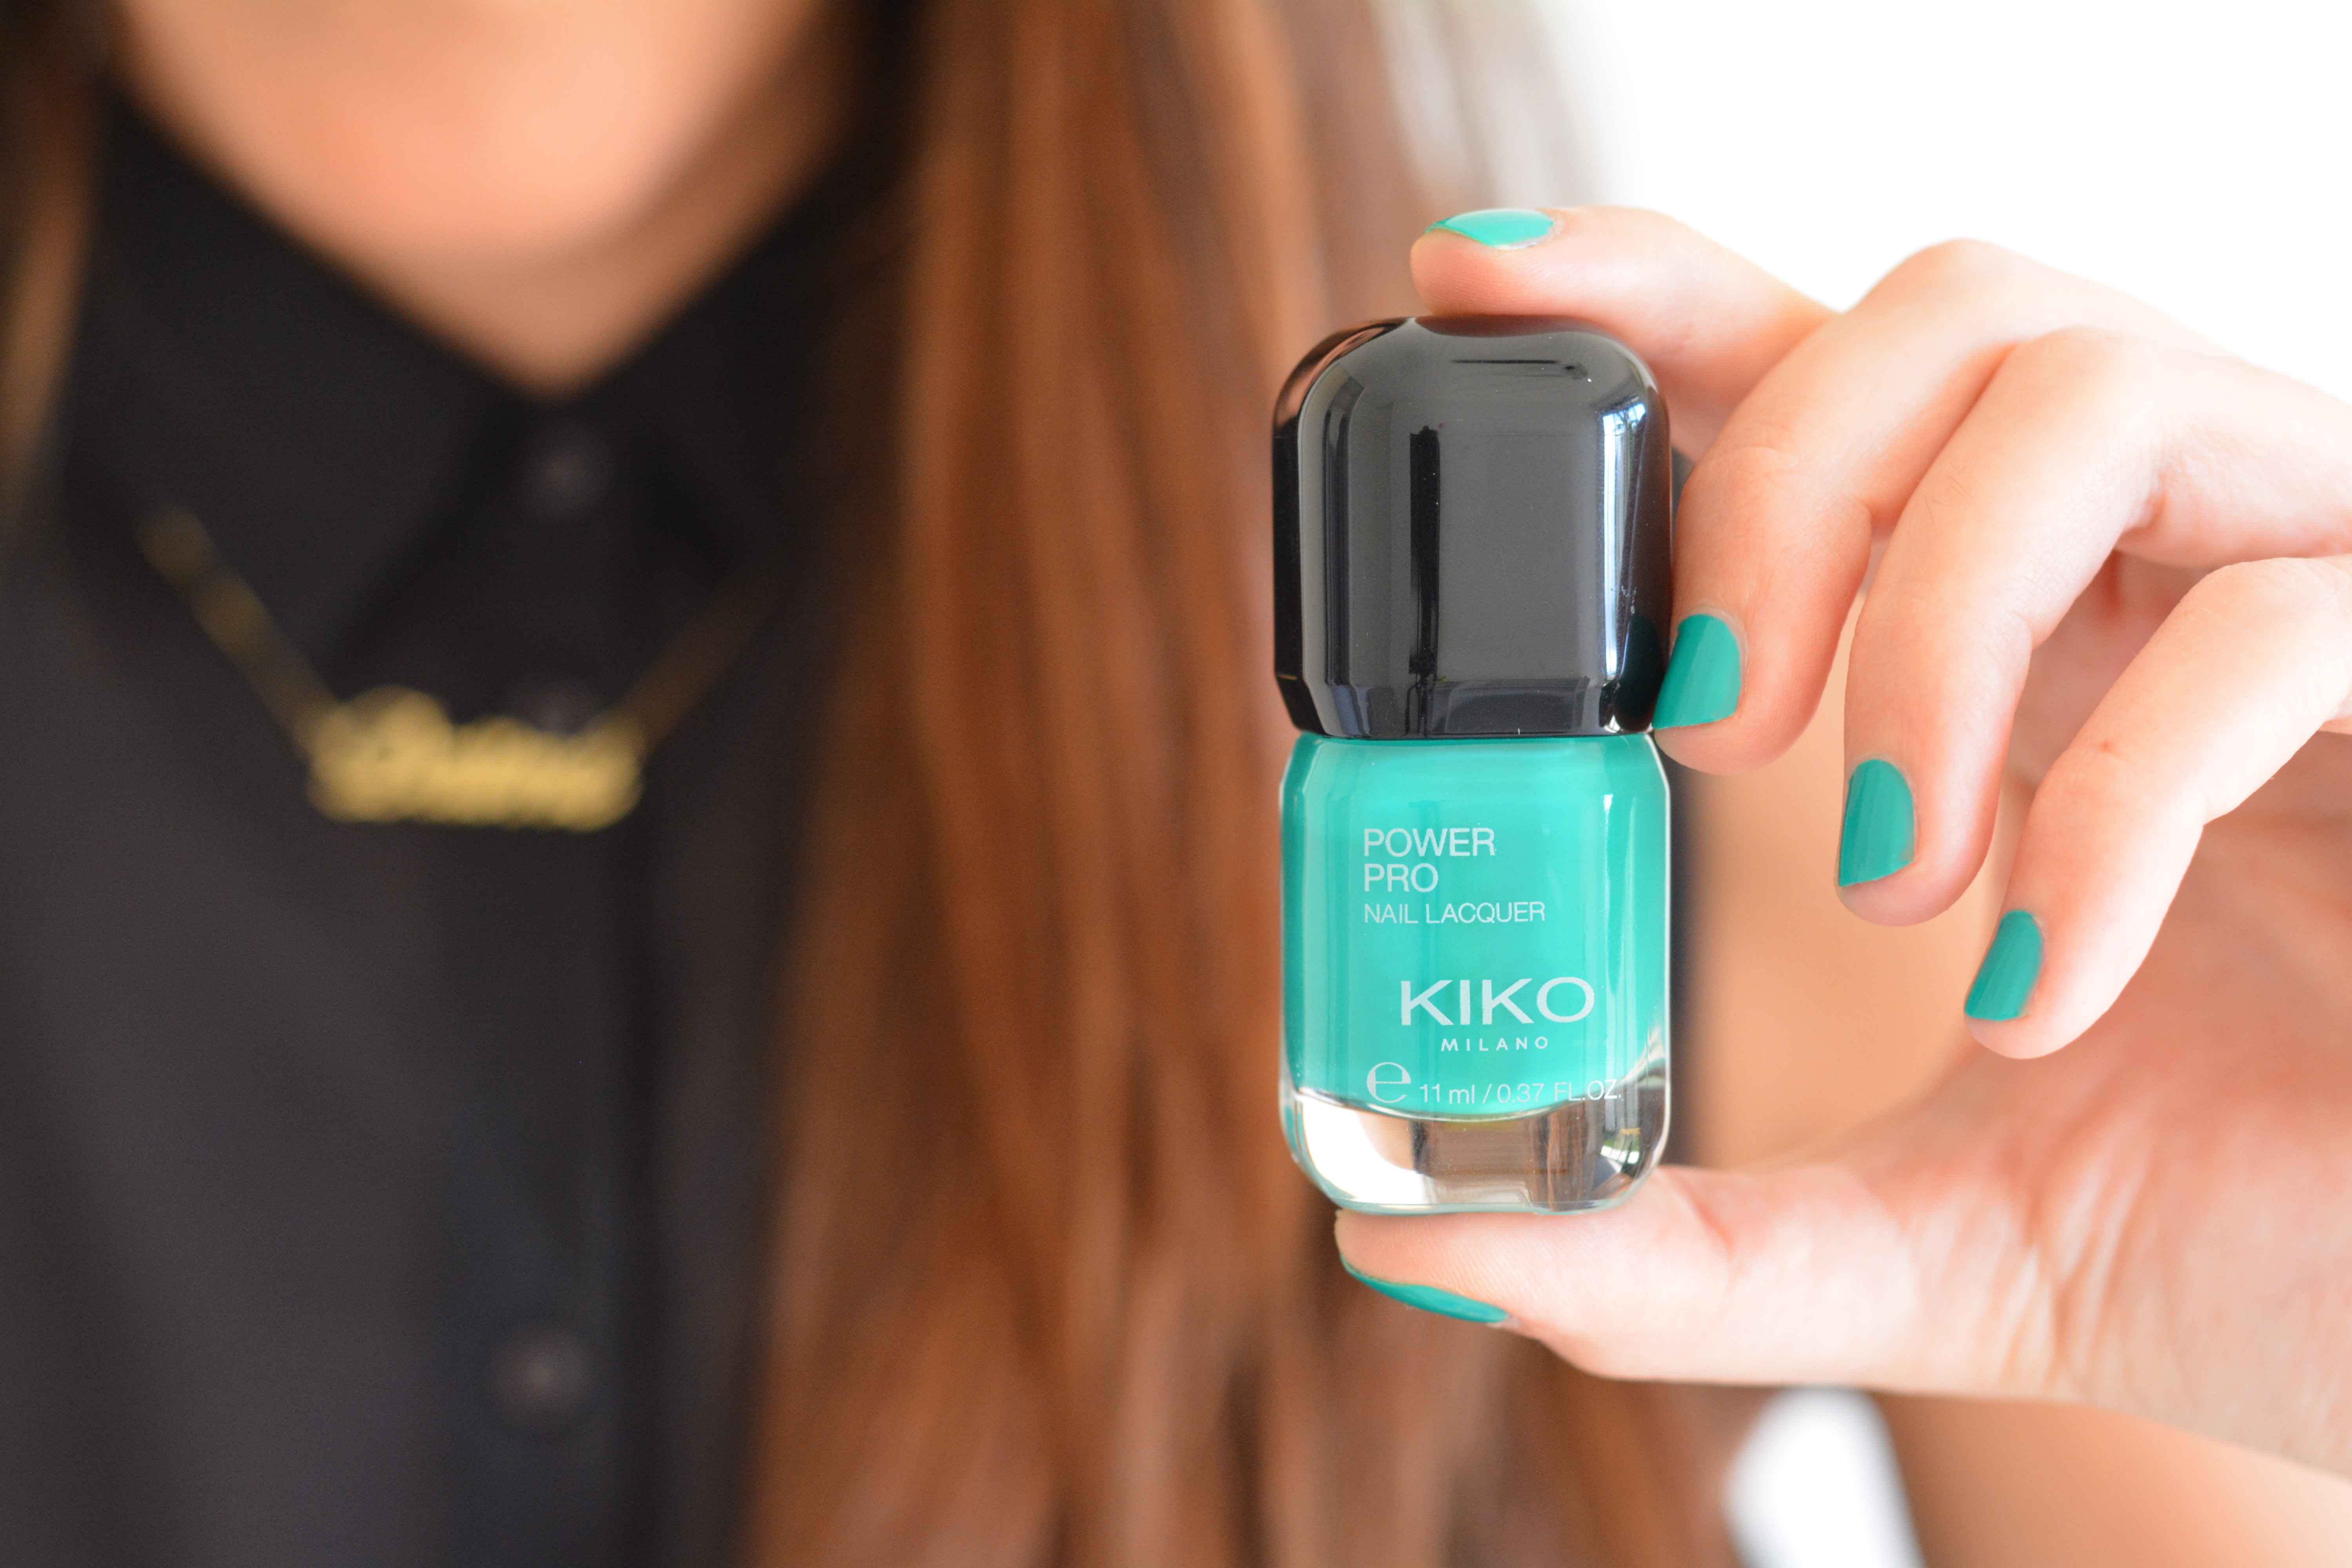 kiko-power-pro-nail-laquer-vernis-ongles-emerald-swatch-